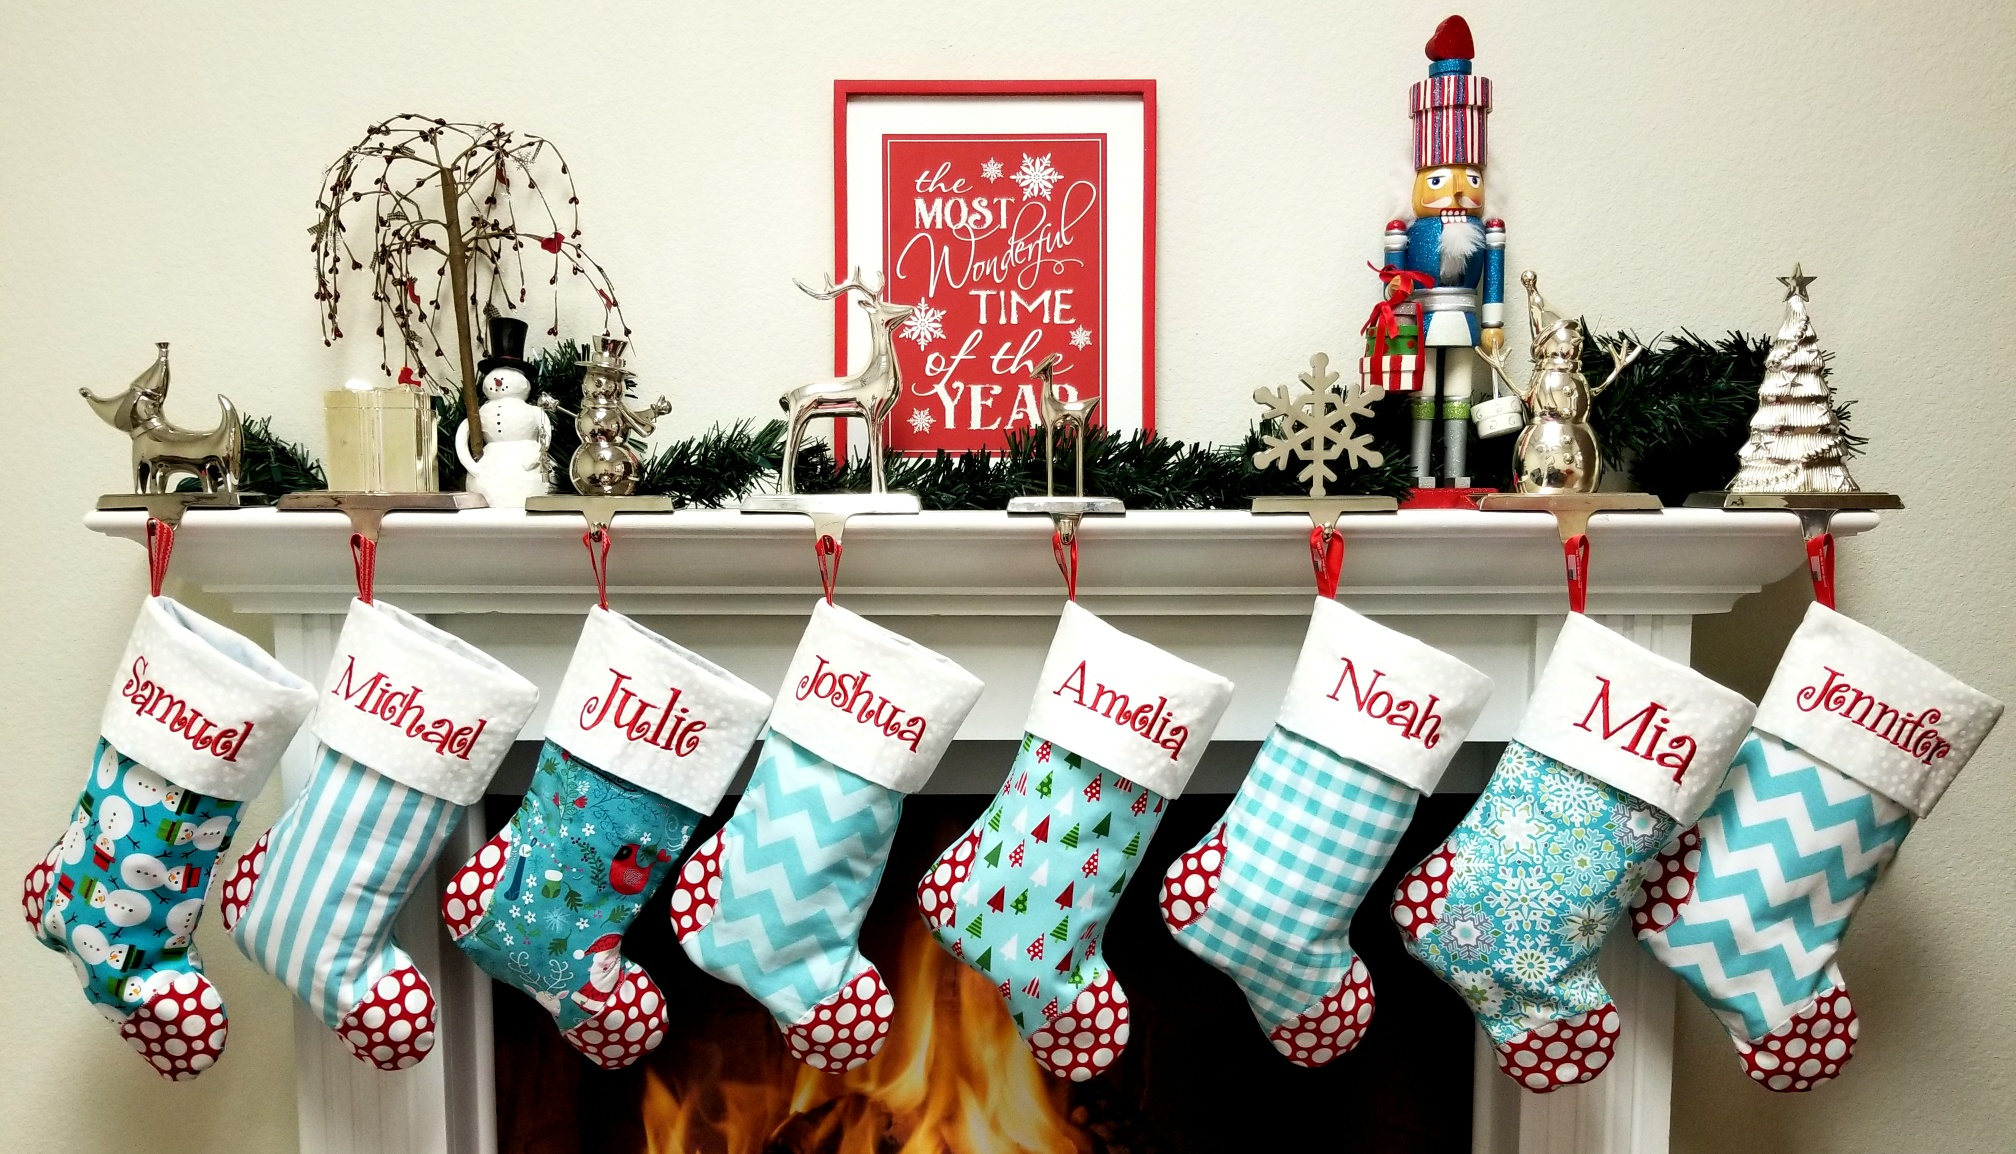 79f0e2d02 SALE Set of 5 Personalized Family Christmas stockings ships